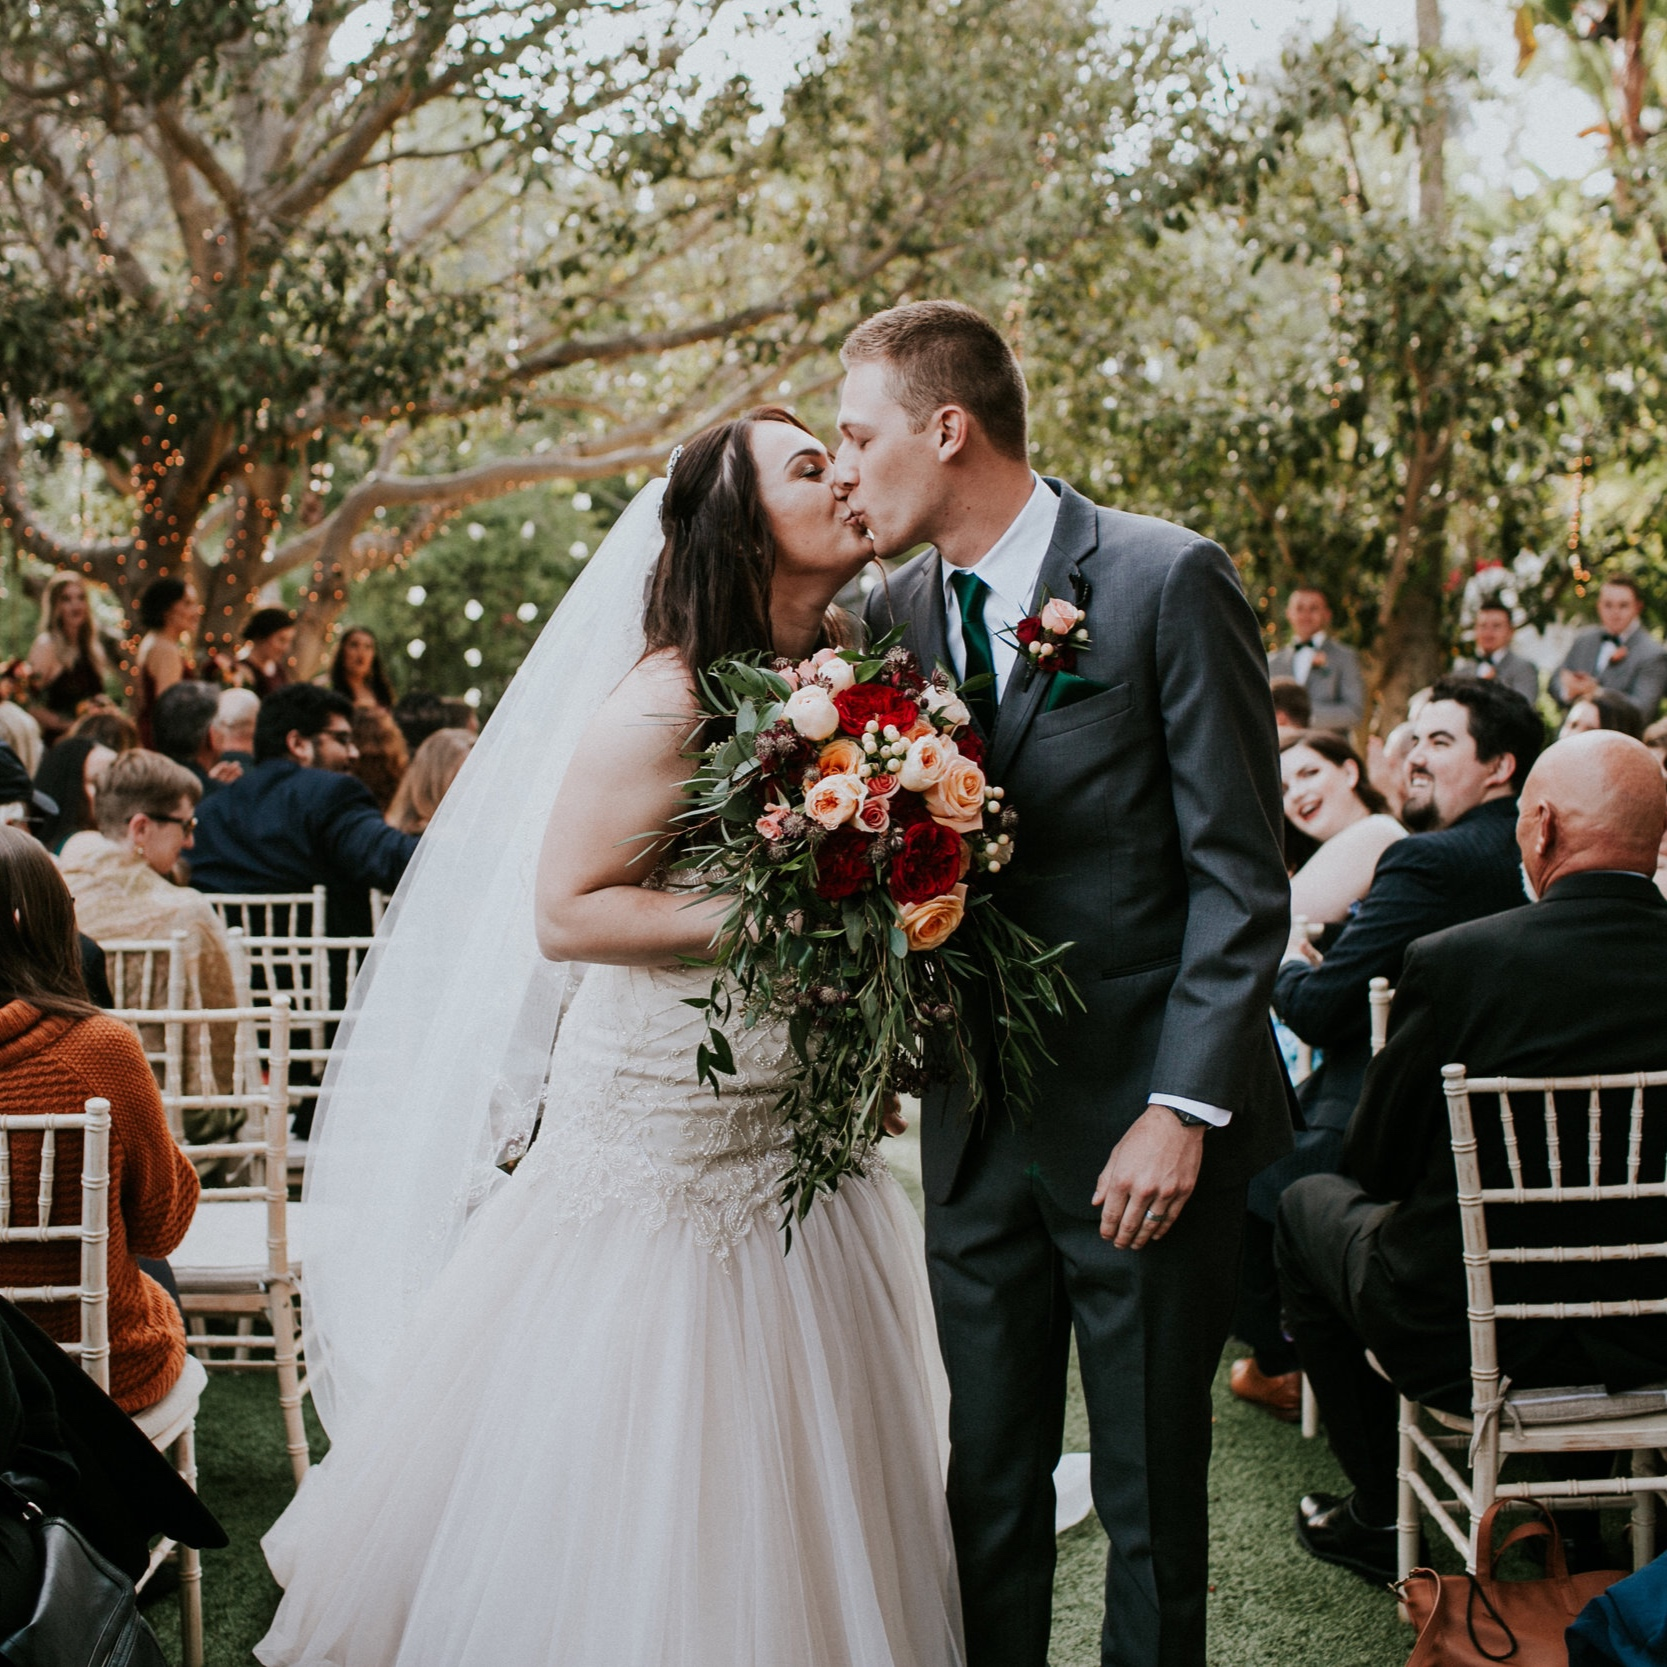 goforth_married2018_278466.jpg